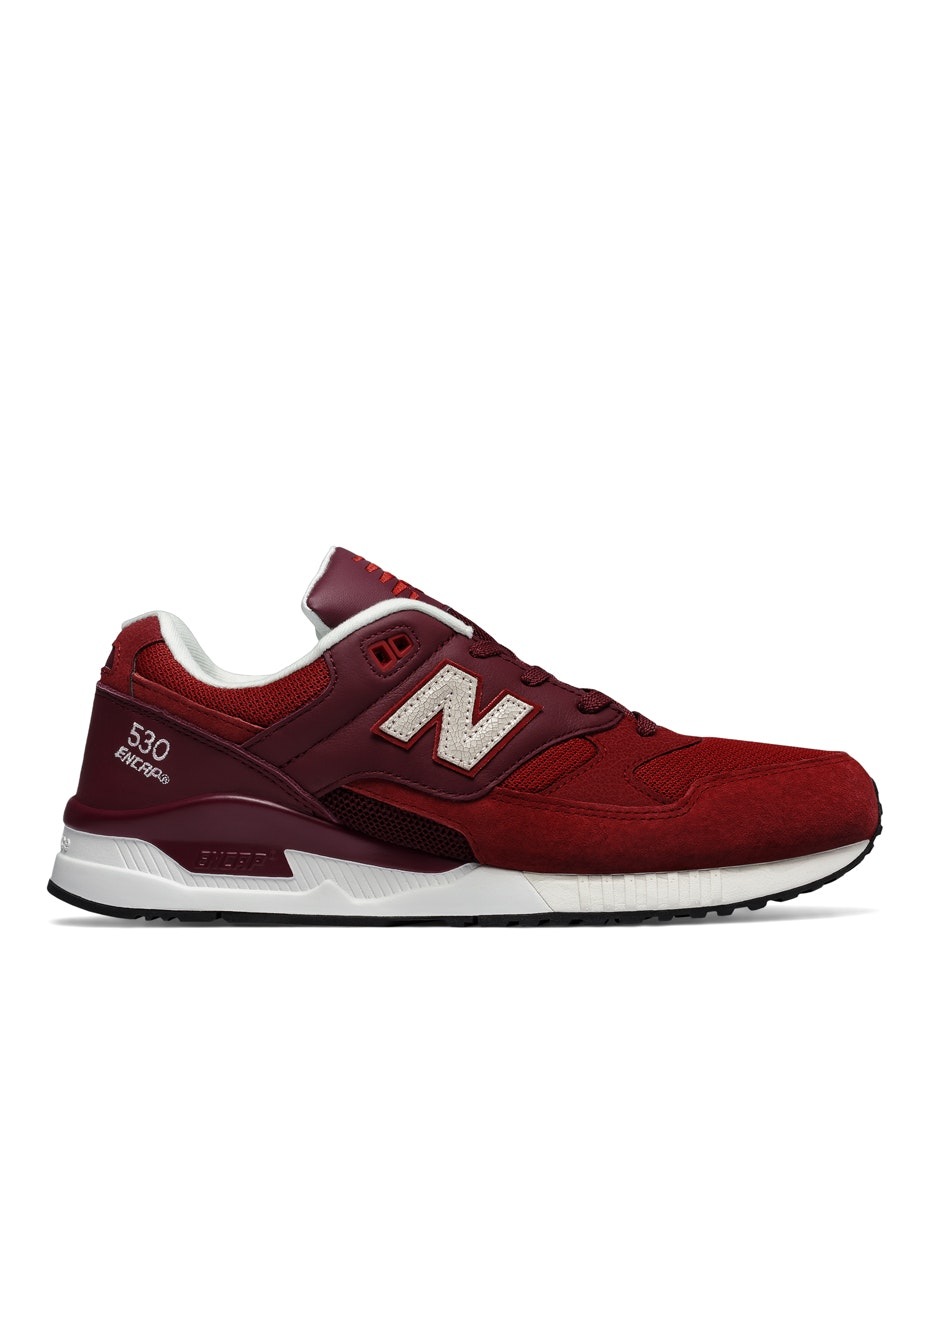 New Balance - Mens - 530 90'S Running - Red / Cream